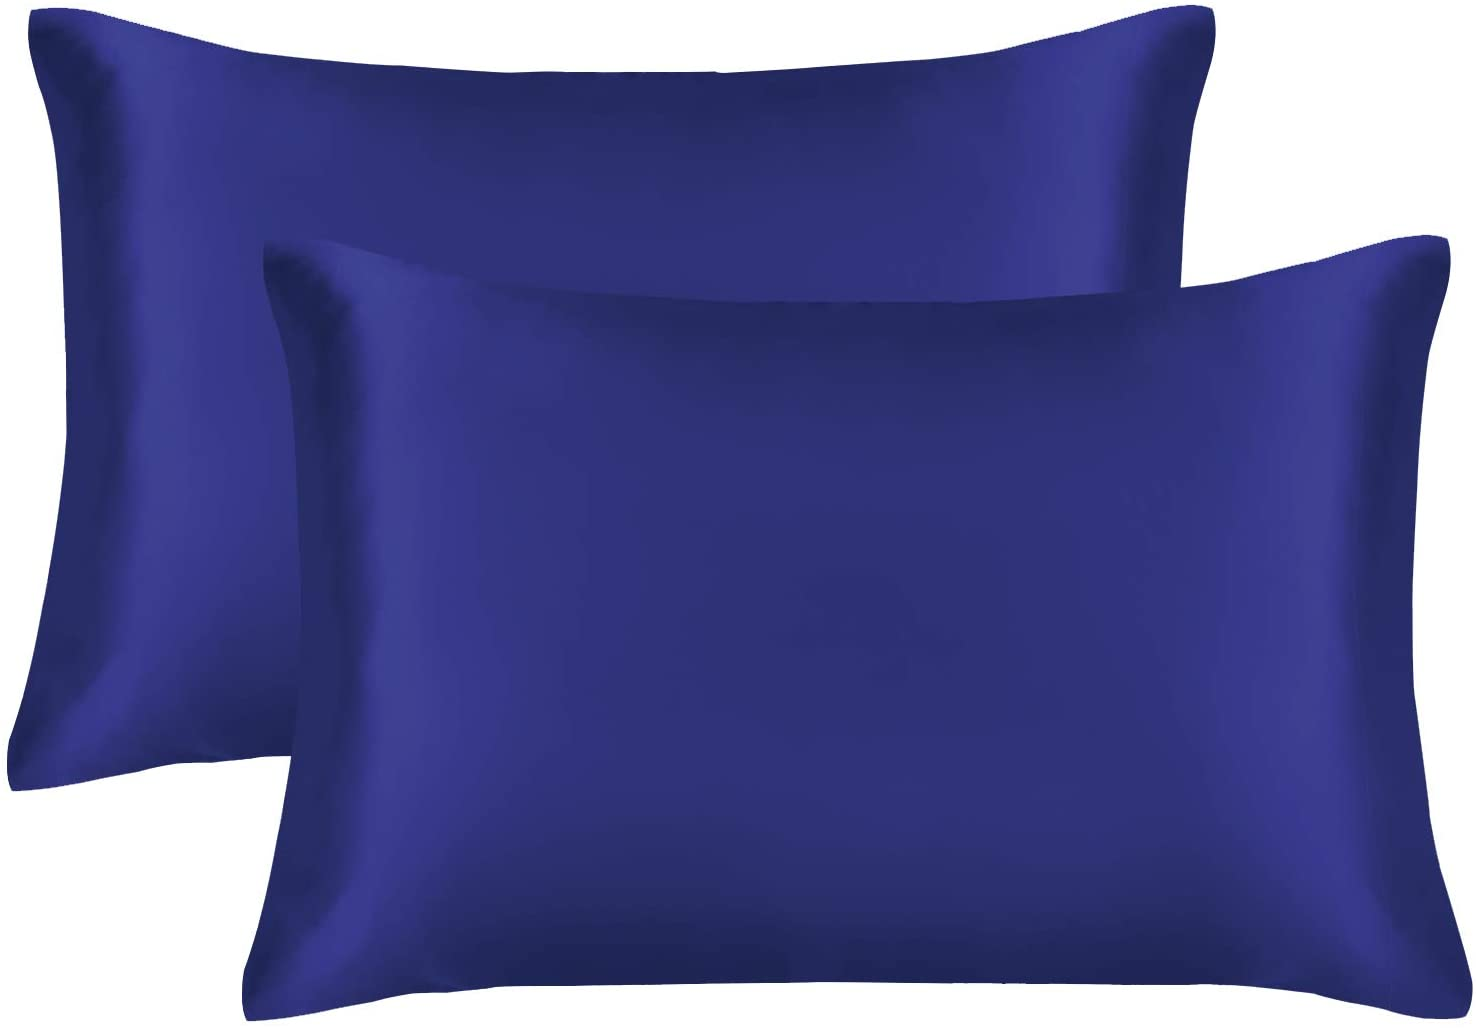 EXQ Home Satin Pillowcase for Hair and Skin,Cooling Pillow Cases King Size Pillow Case Set of 2 Satin Pillow Covers with Envelope Closure Navy Blue (King)